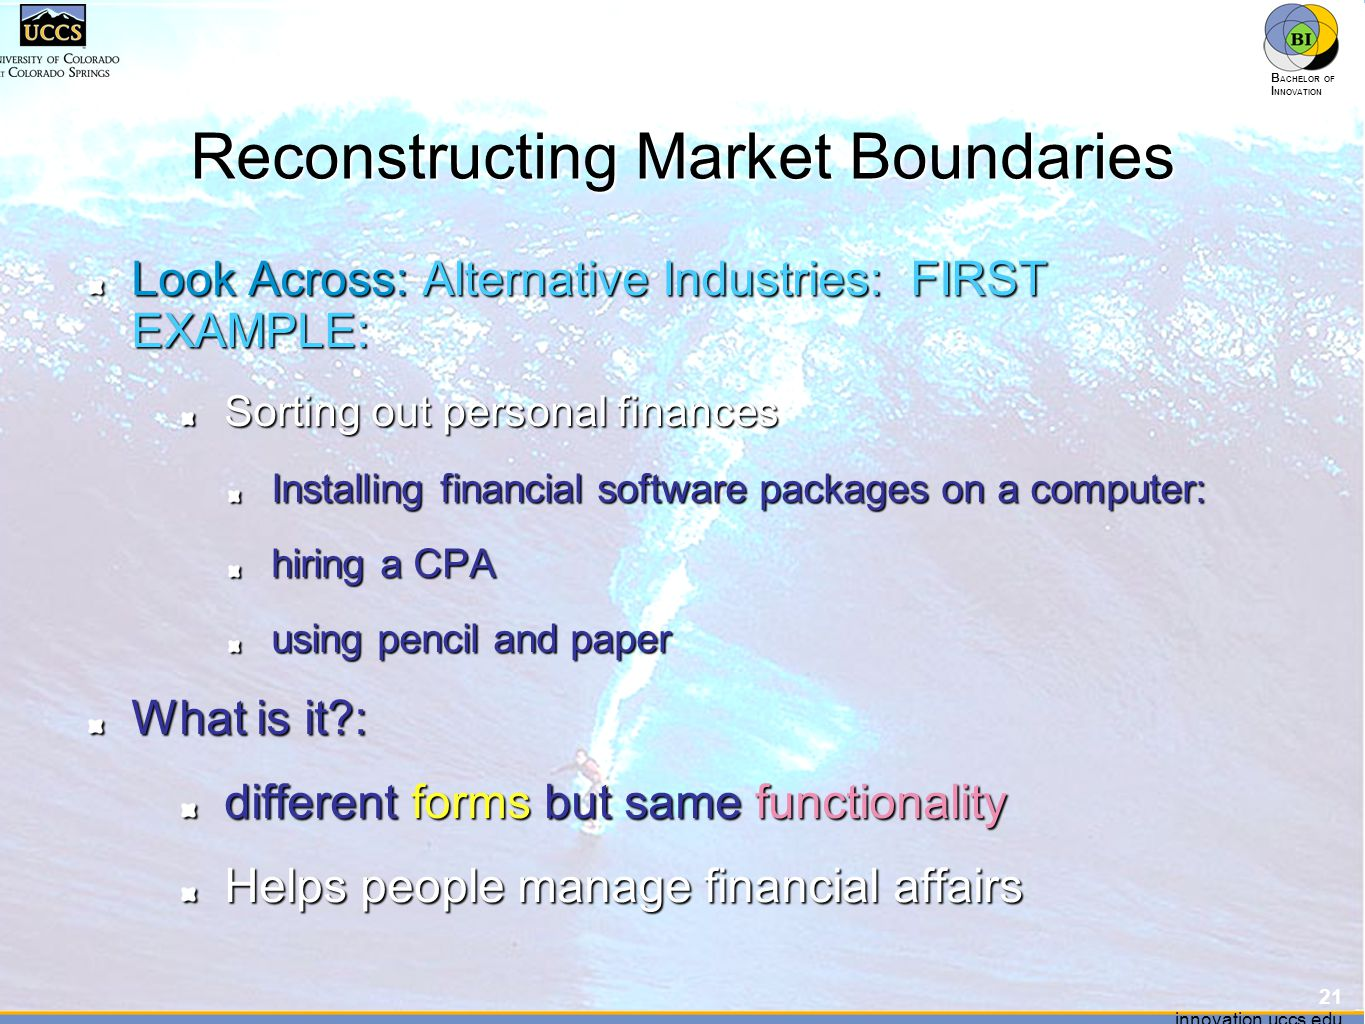 innovation.uccs.edu B ACHELOR OF I NNOVATION ™ innovation.uccs.edu B ACHELOR OF I NNOVATION ™ Reconstructing Market Boundaries Look Across: Alternative Industries: FIRST EXAMPLE: Sorting out personal finances Installing financial software packages on a computer: hiring a CPA using pencil and paper What is it?: different forms but same functionality Helps people manage financial affairs 21